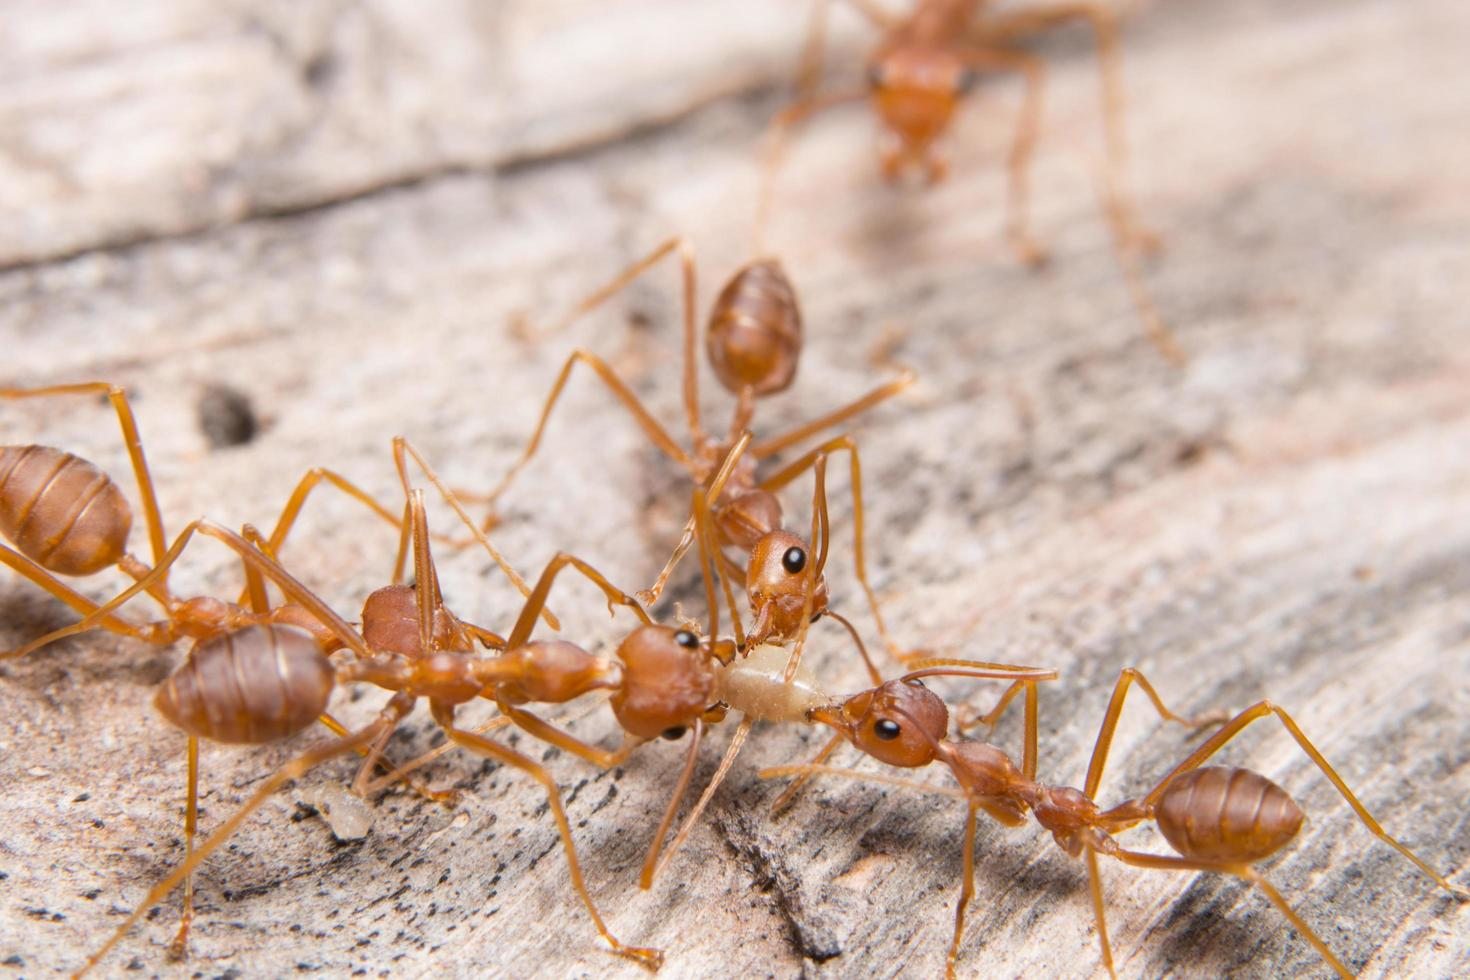 Red ants close-up photo